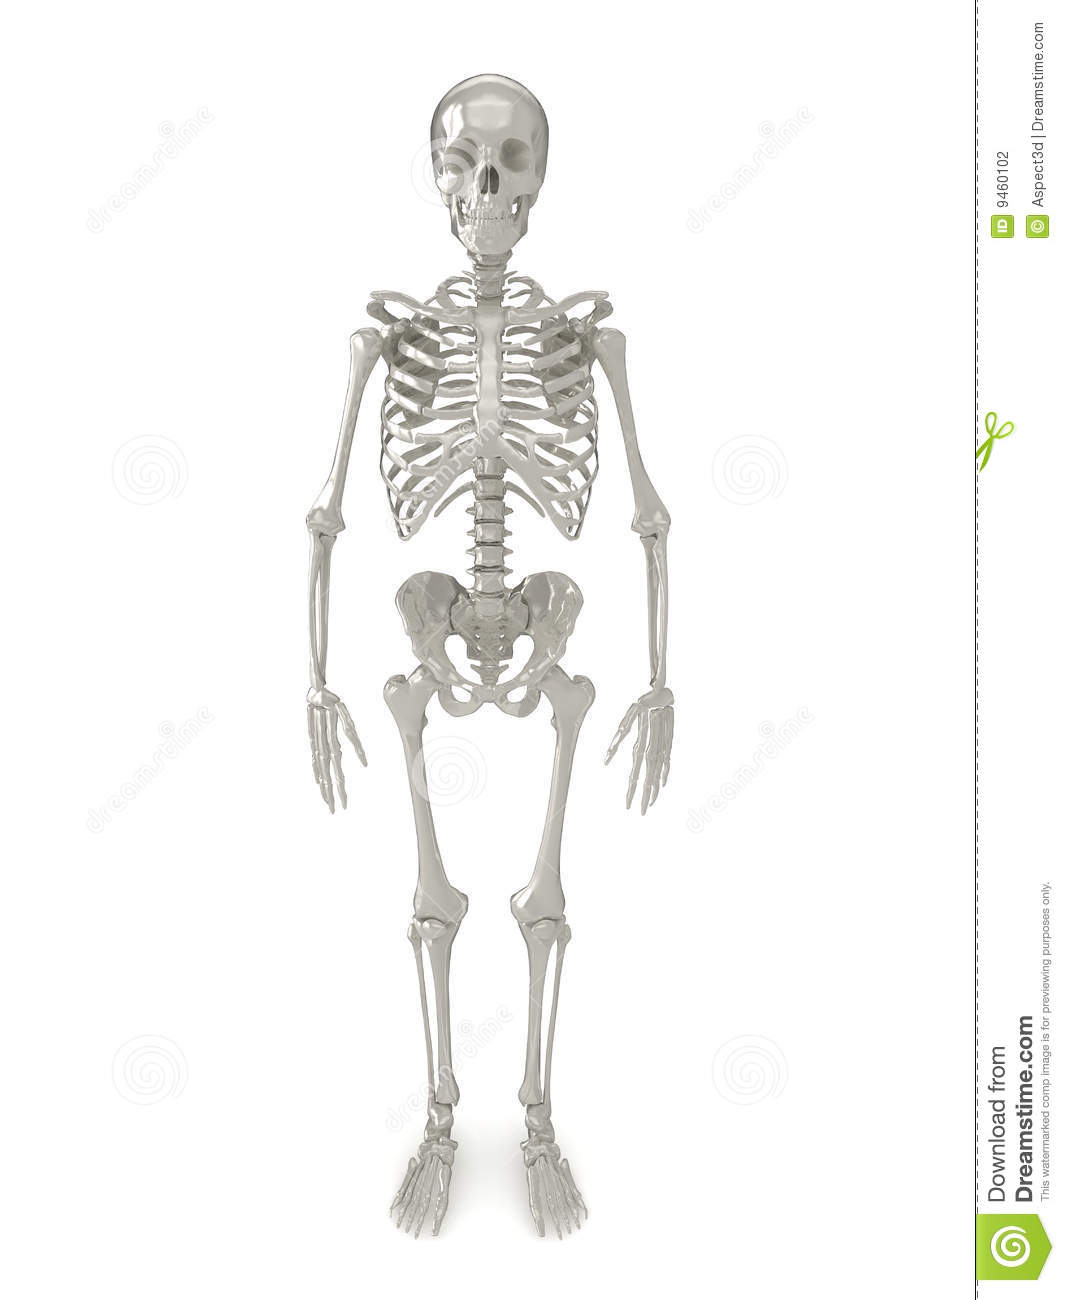 Skeleton front view stock illustration. Illustration of male - 9460102